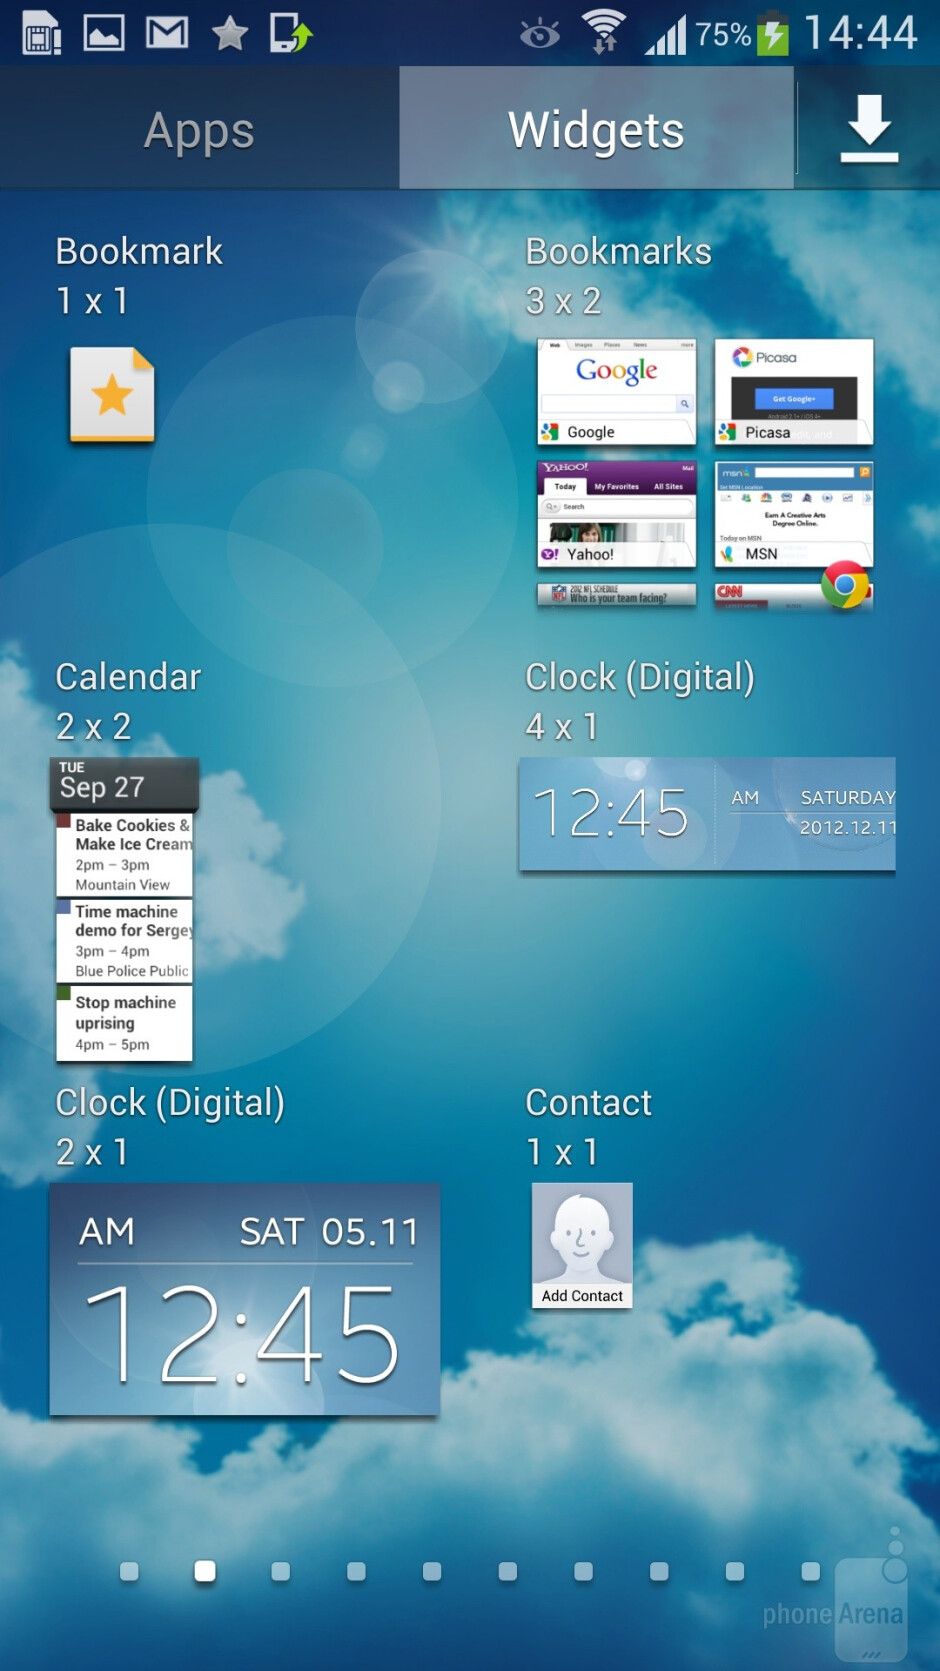 Interface of the Samsung Galaxy S4 - Sony Xperia Z1 Compact vs Samsung Galaxy S4